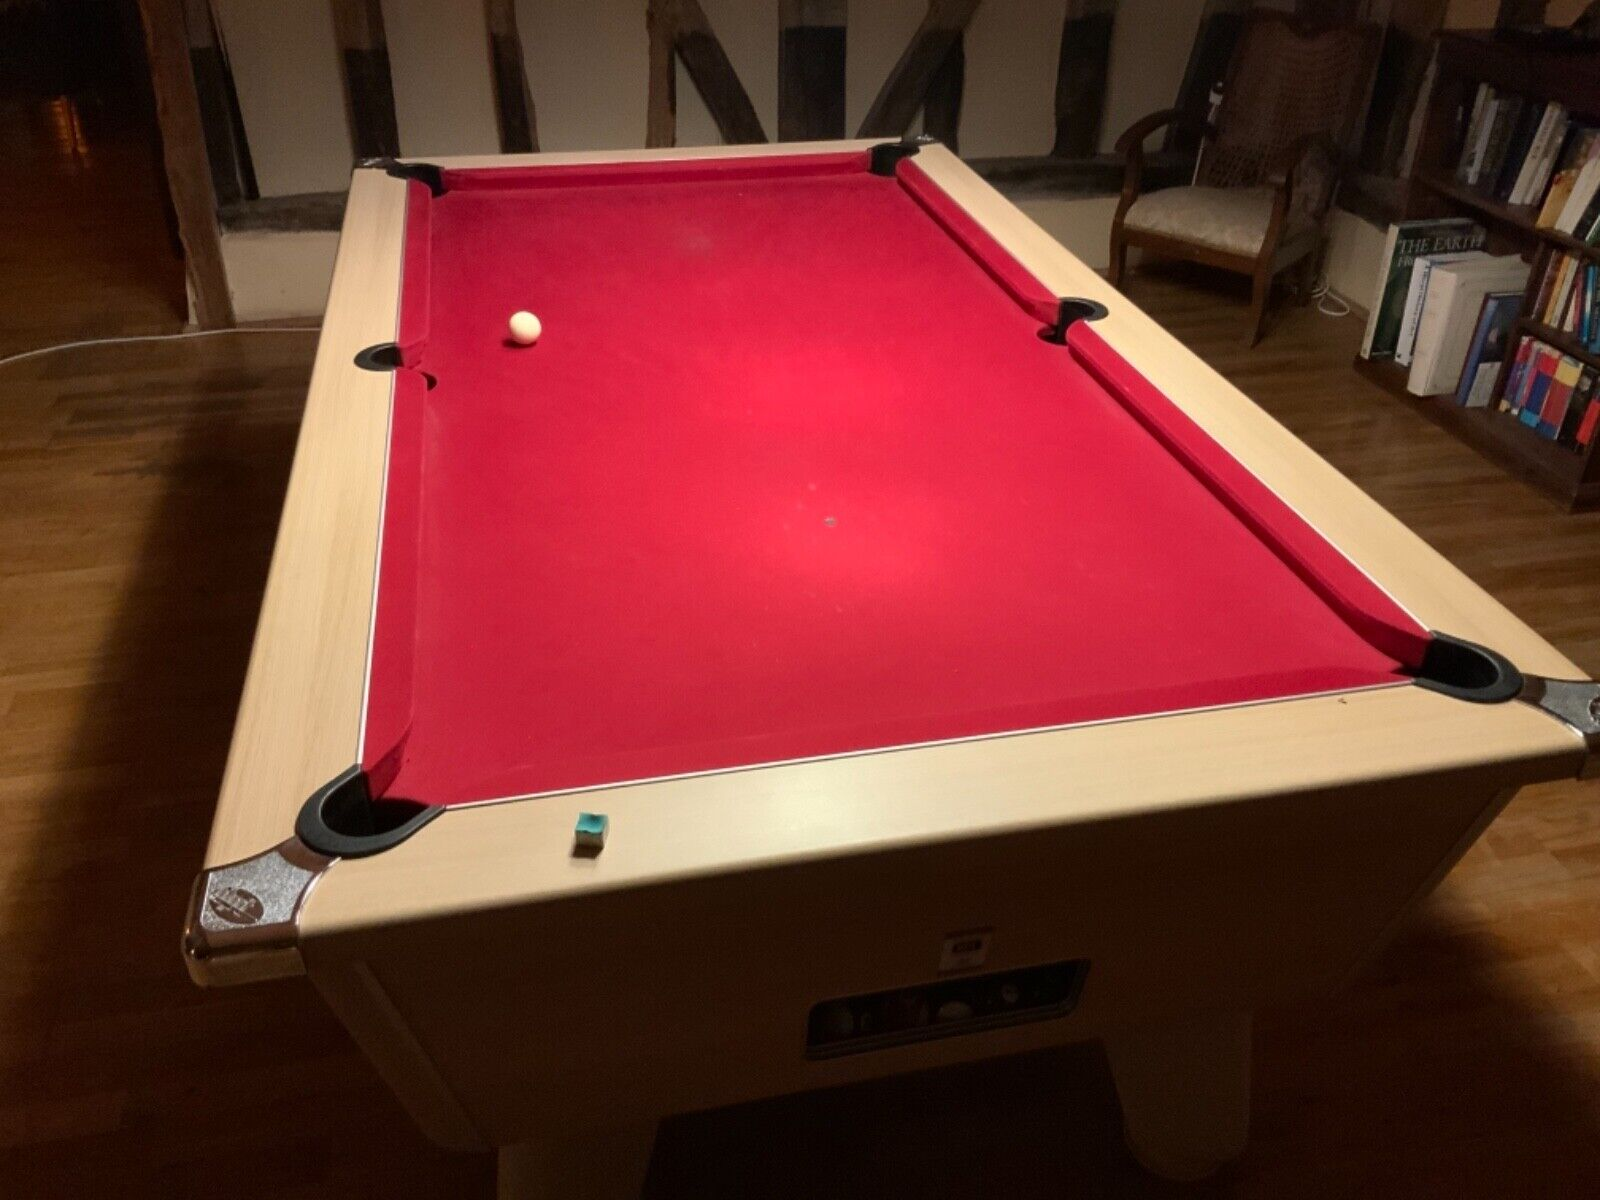 DPT Pool Table, 6 ft x 3 ft, red cloth, slate, approx 3 years old.